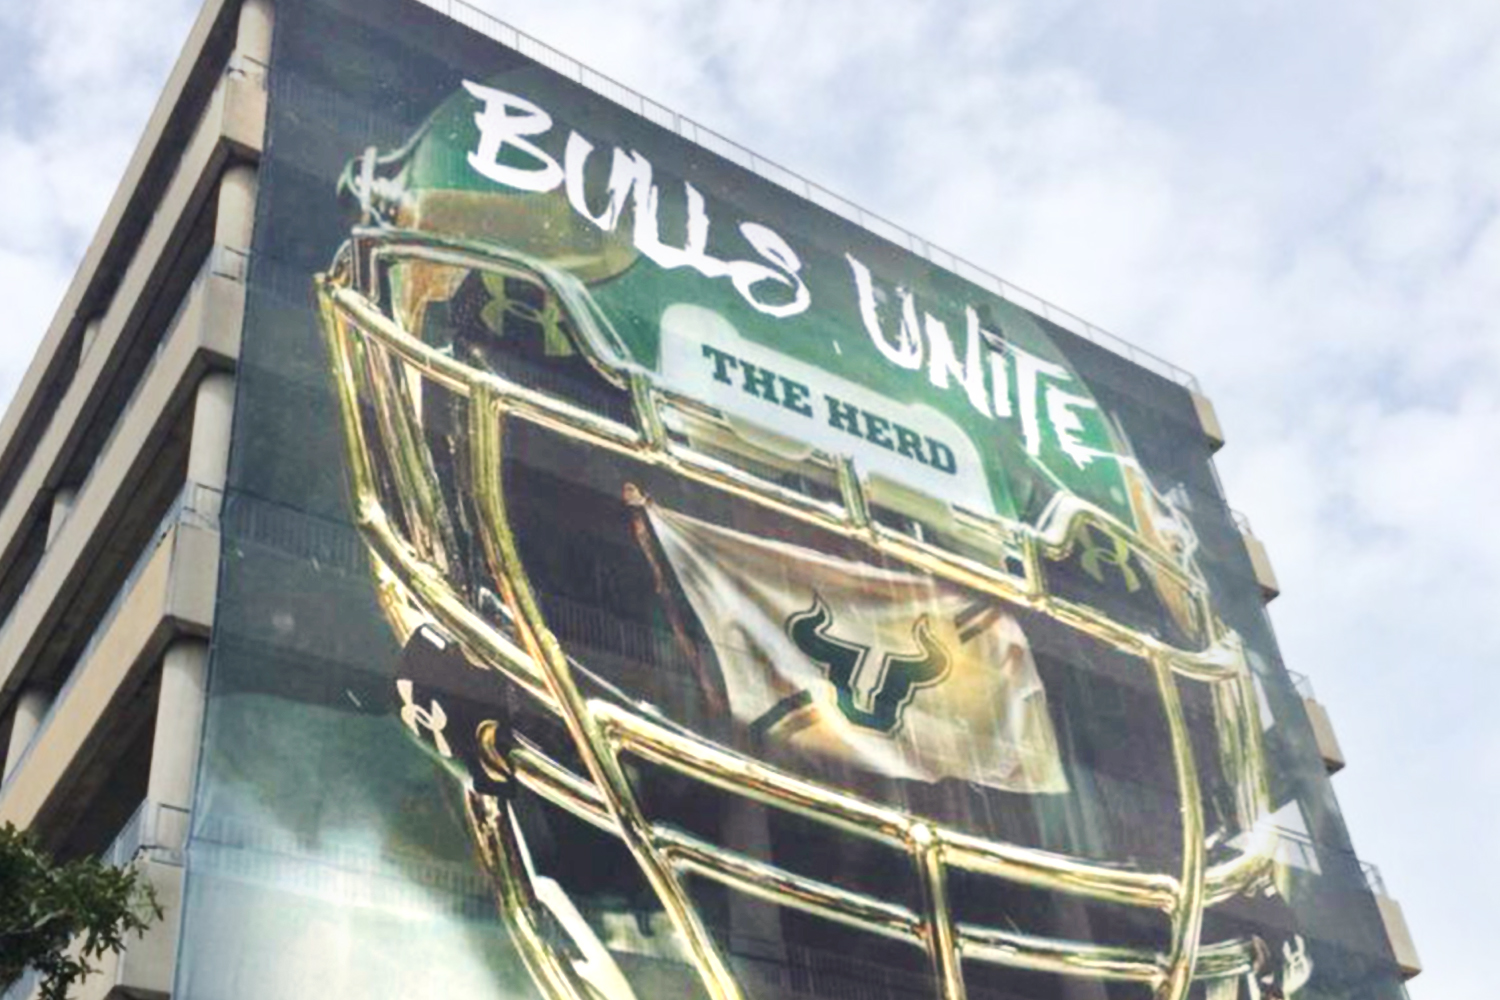 BullsUnite_Stadium2.jpg